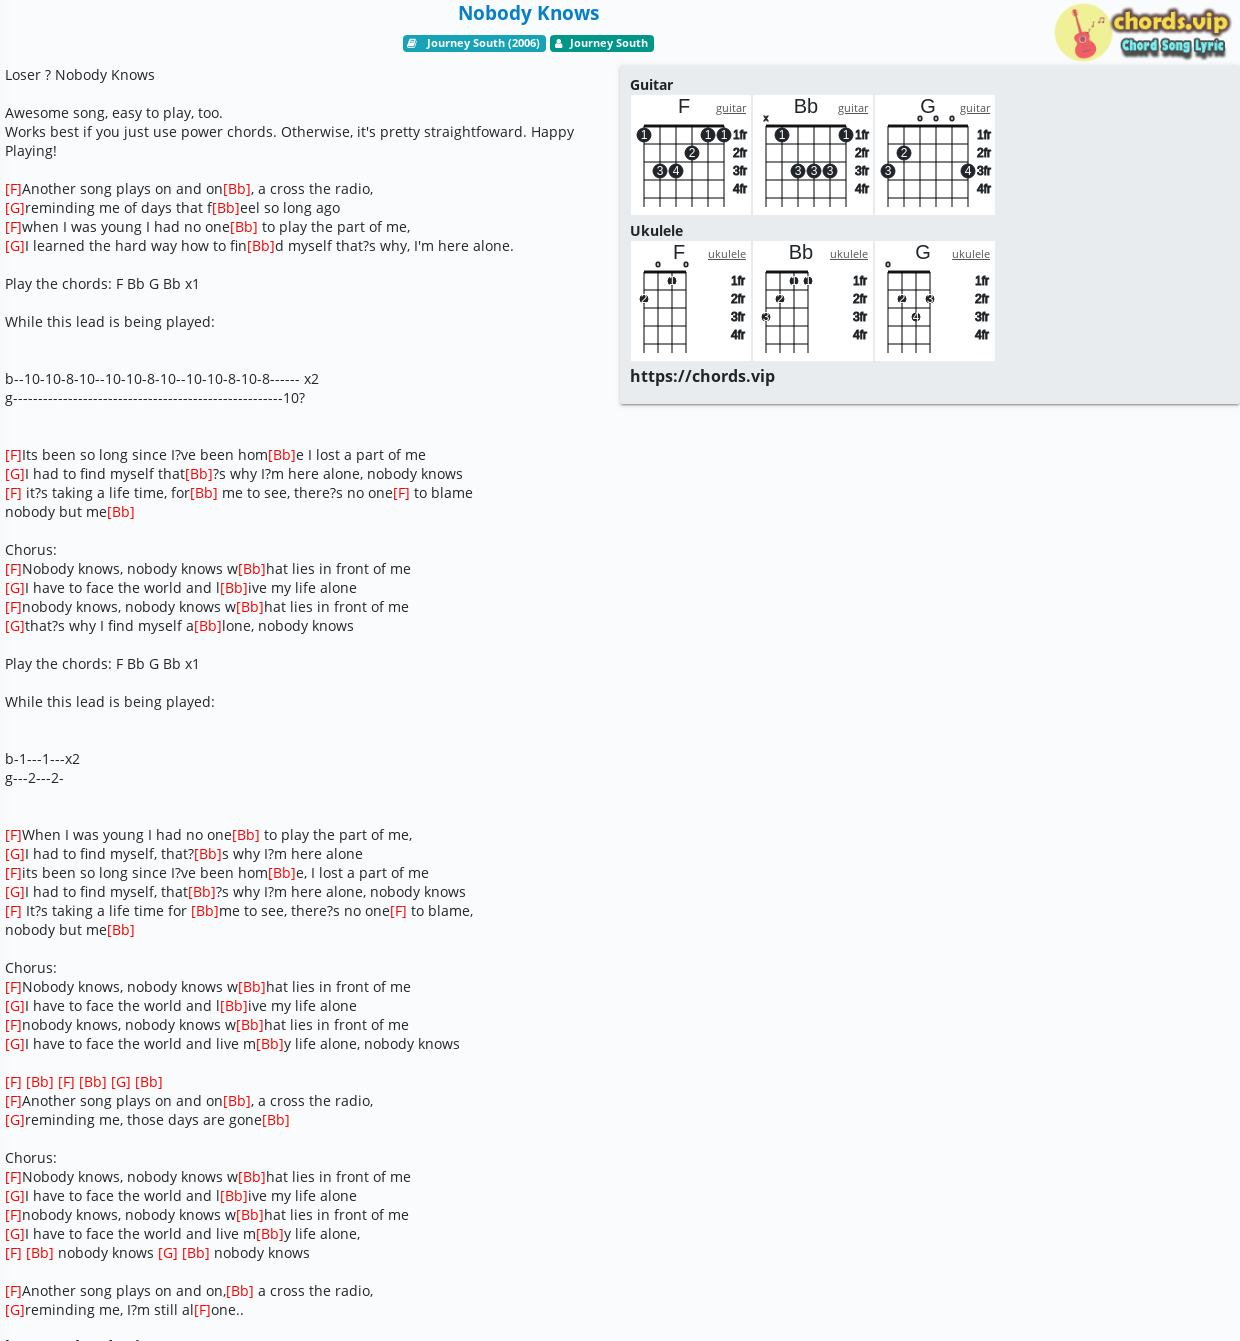 Chord Nobody Knows Journey South Tab Song Lyric Sheet Guitar Ukulele Chords Vip Check out nobody knows song lyrics in english and listen to nobody knows song sung by faces on gaana.com. tab song lyric sheet guitar ukulele